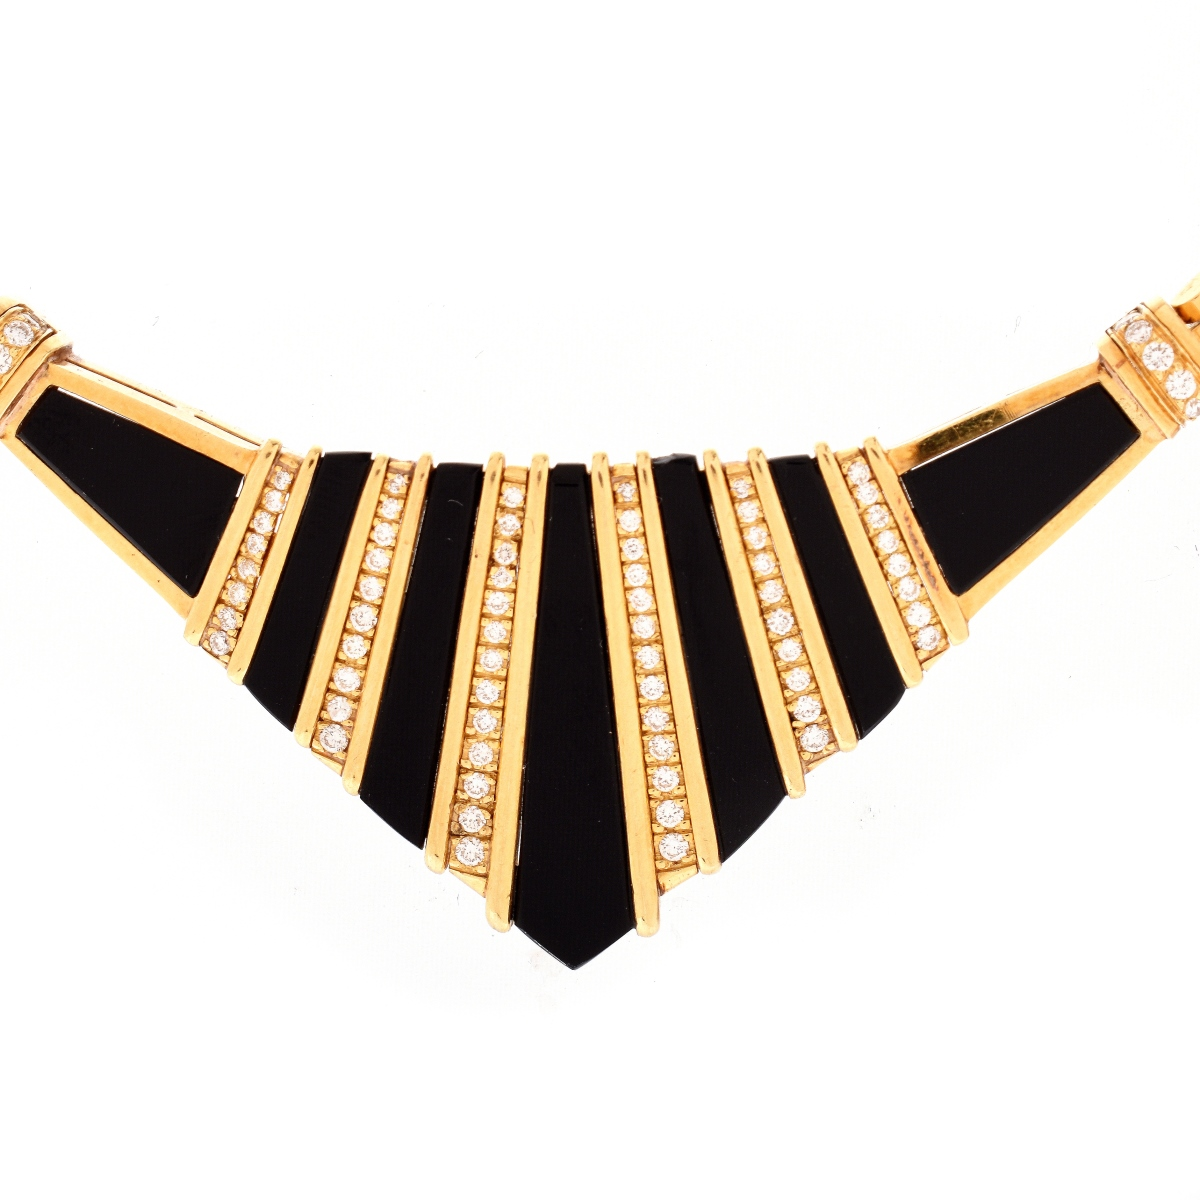 Vintage Diamond, Onyx and 18K Necklace